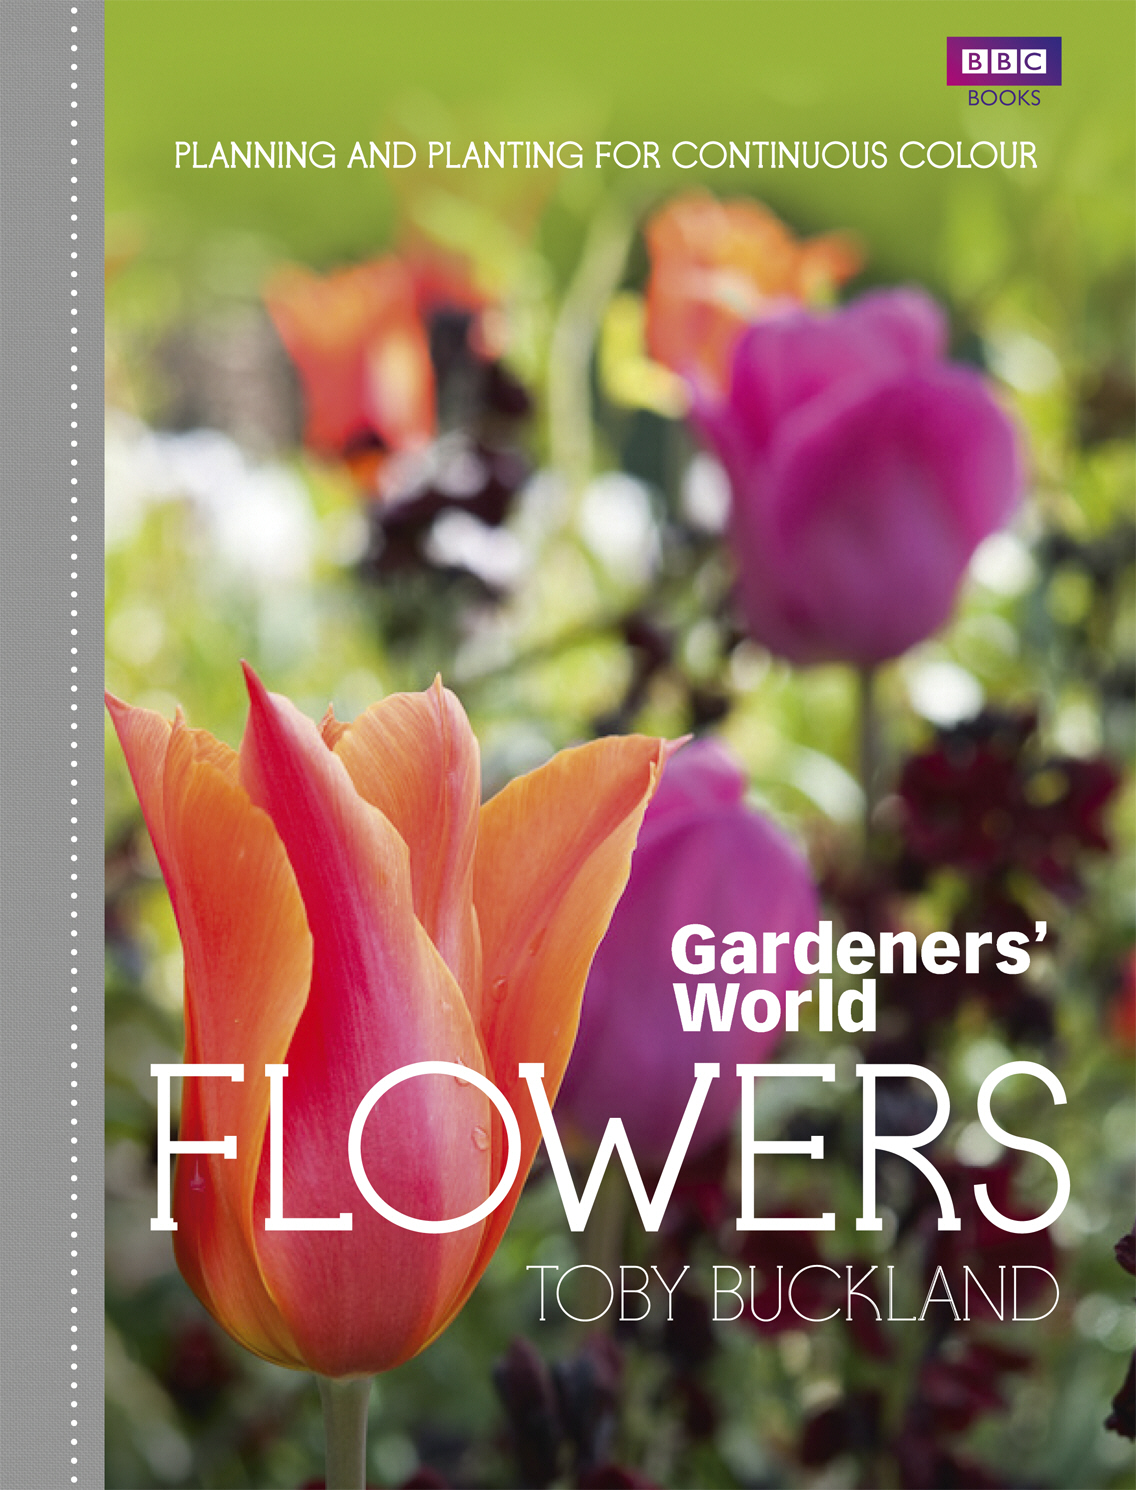 Gardeners' World: Flowers Planning and Planting for Continuous Colour